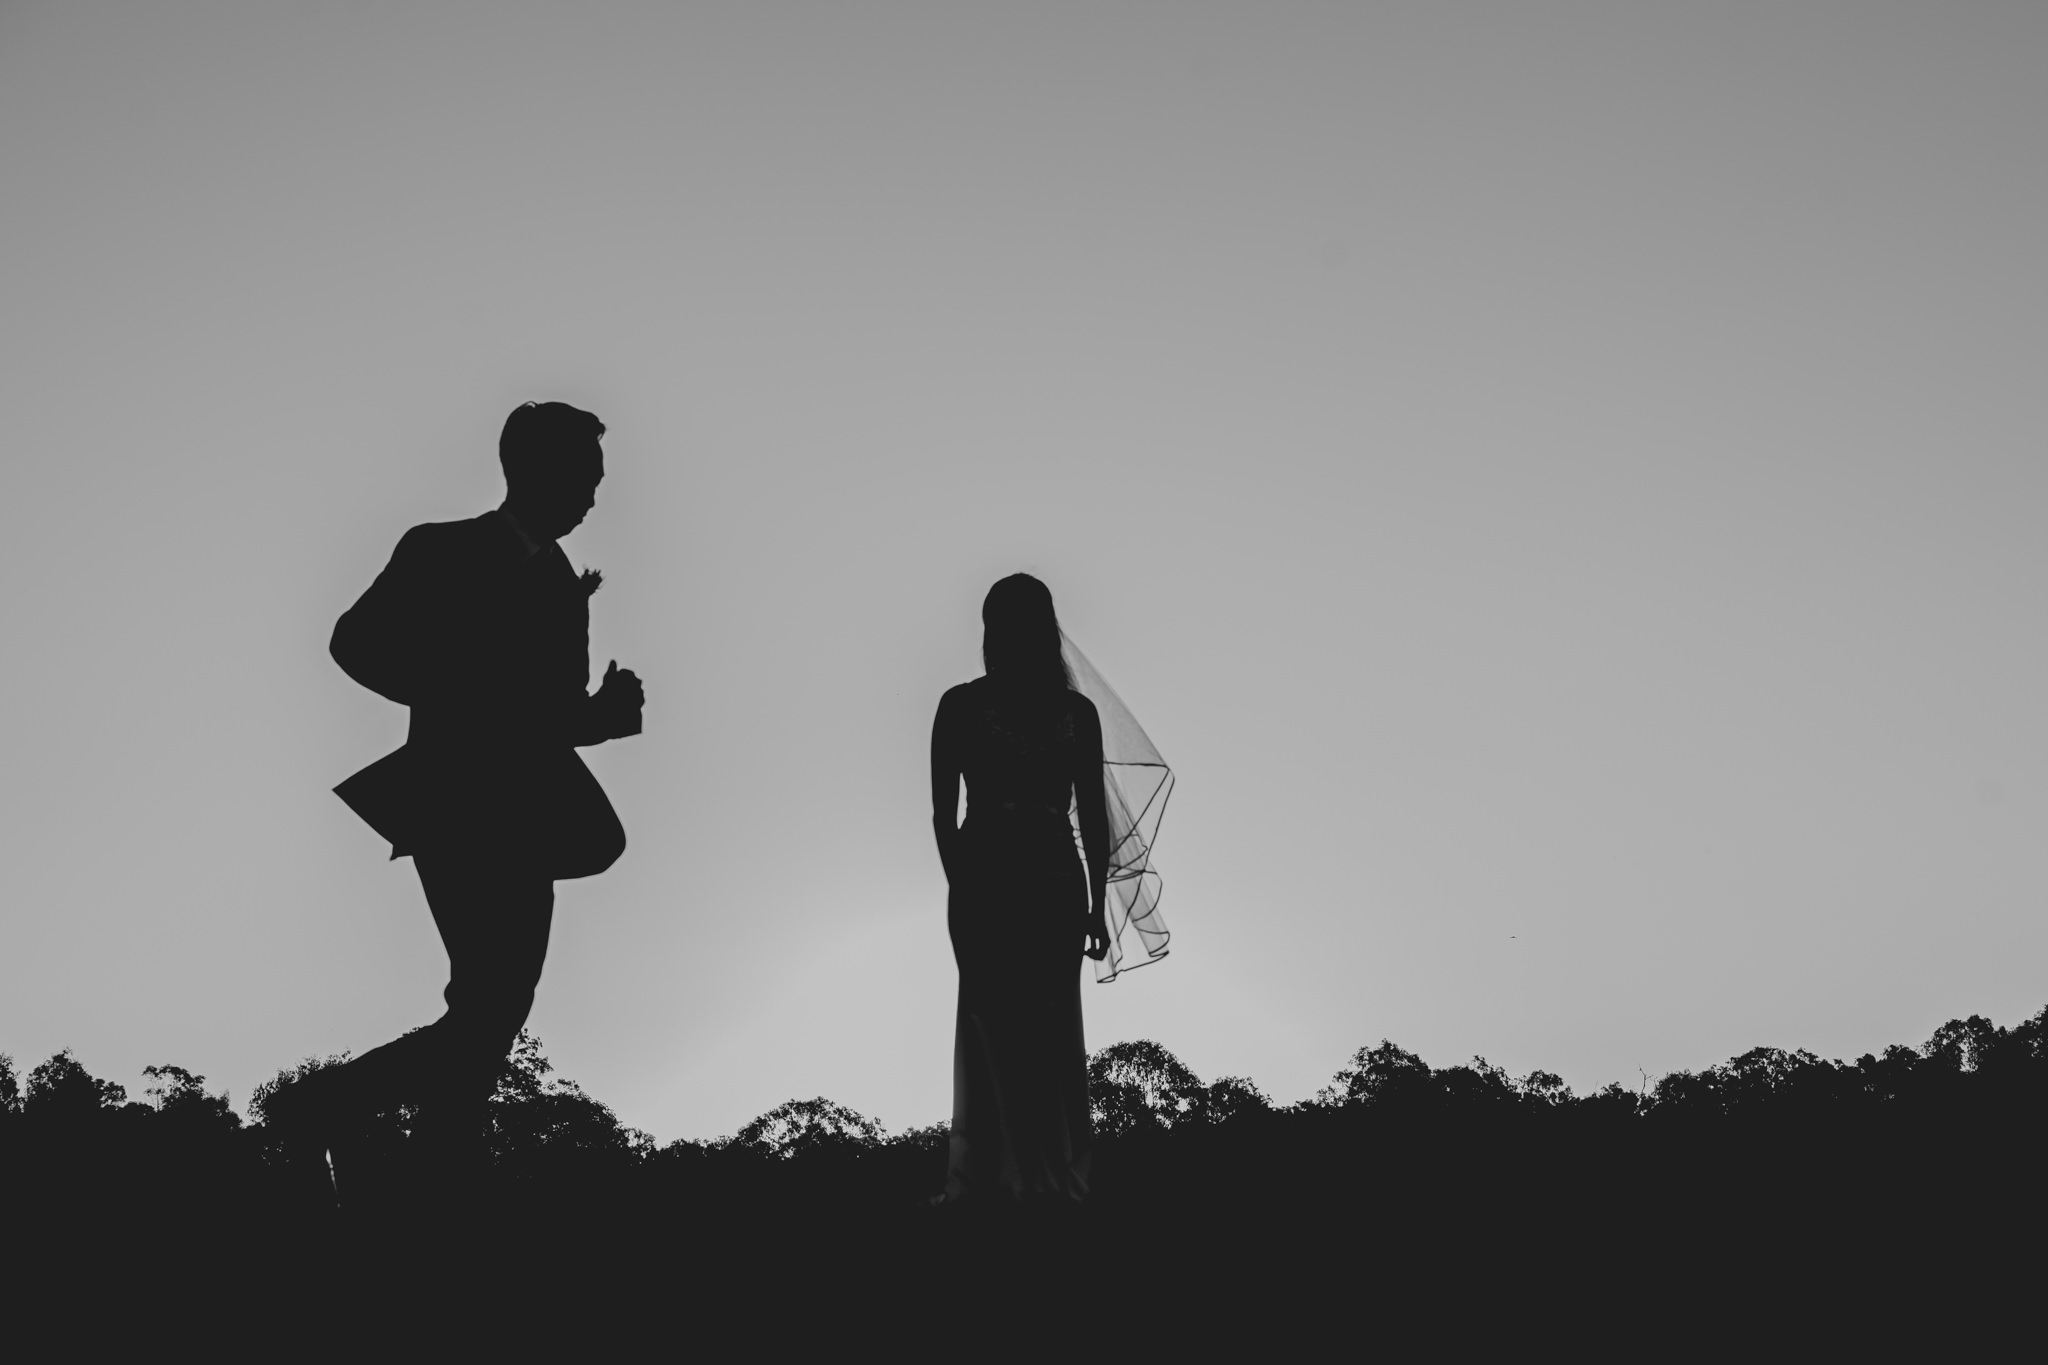 Silhouette of a groom running as a bride stands in the centre of a clear sky